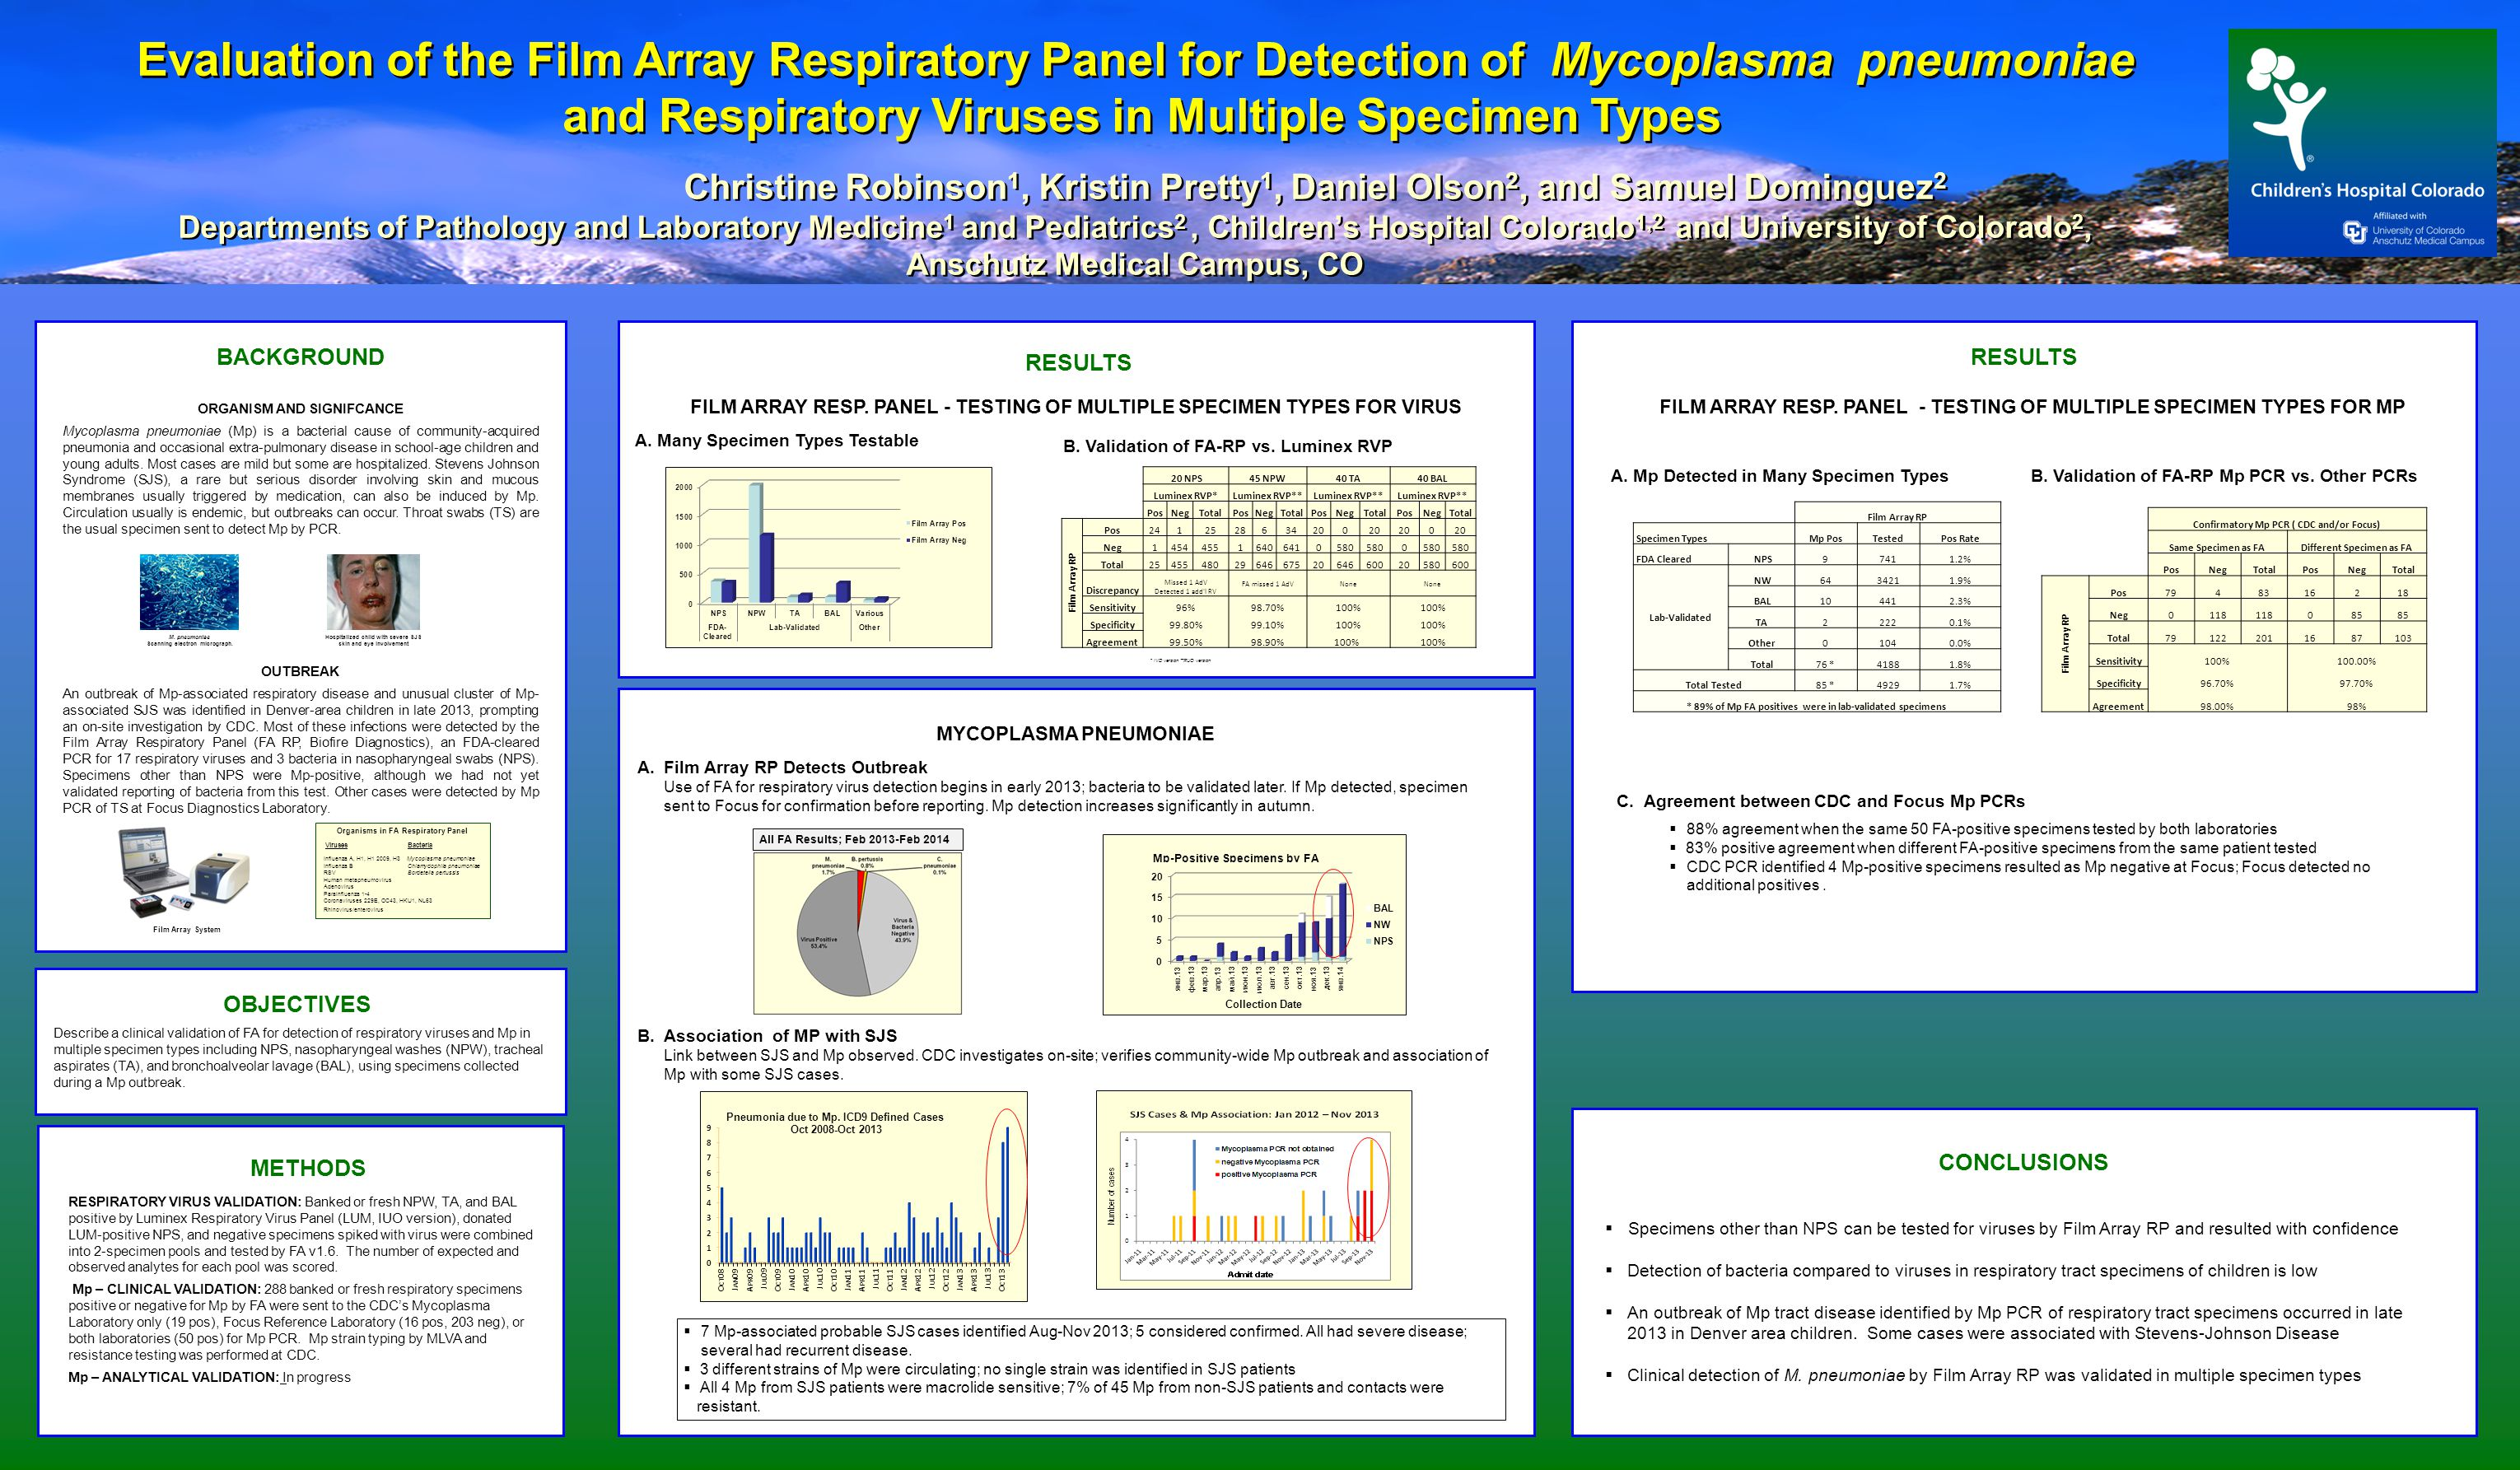 Evaluation of the Film Array Respiratory Panel for Detection of Mycoplasma pneumoniae